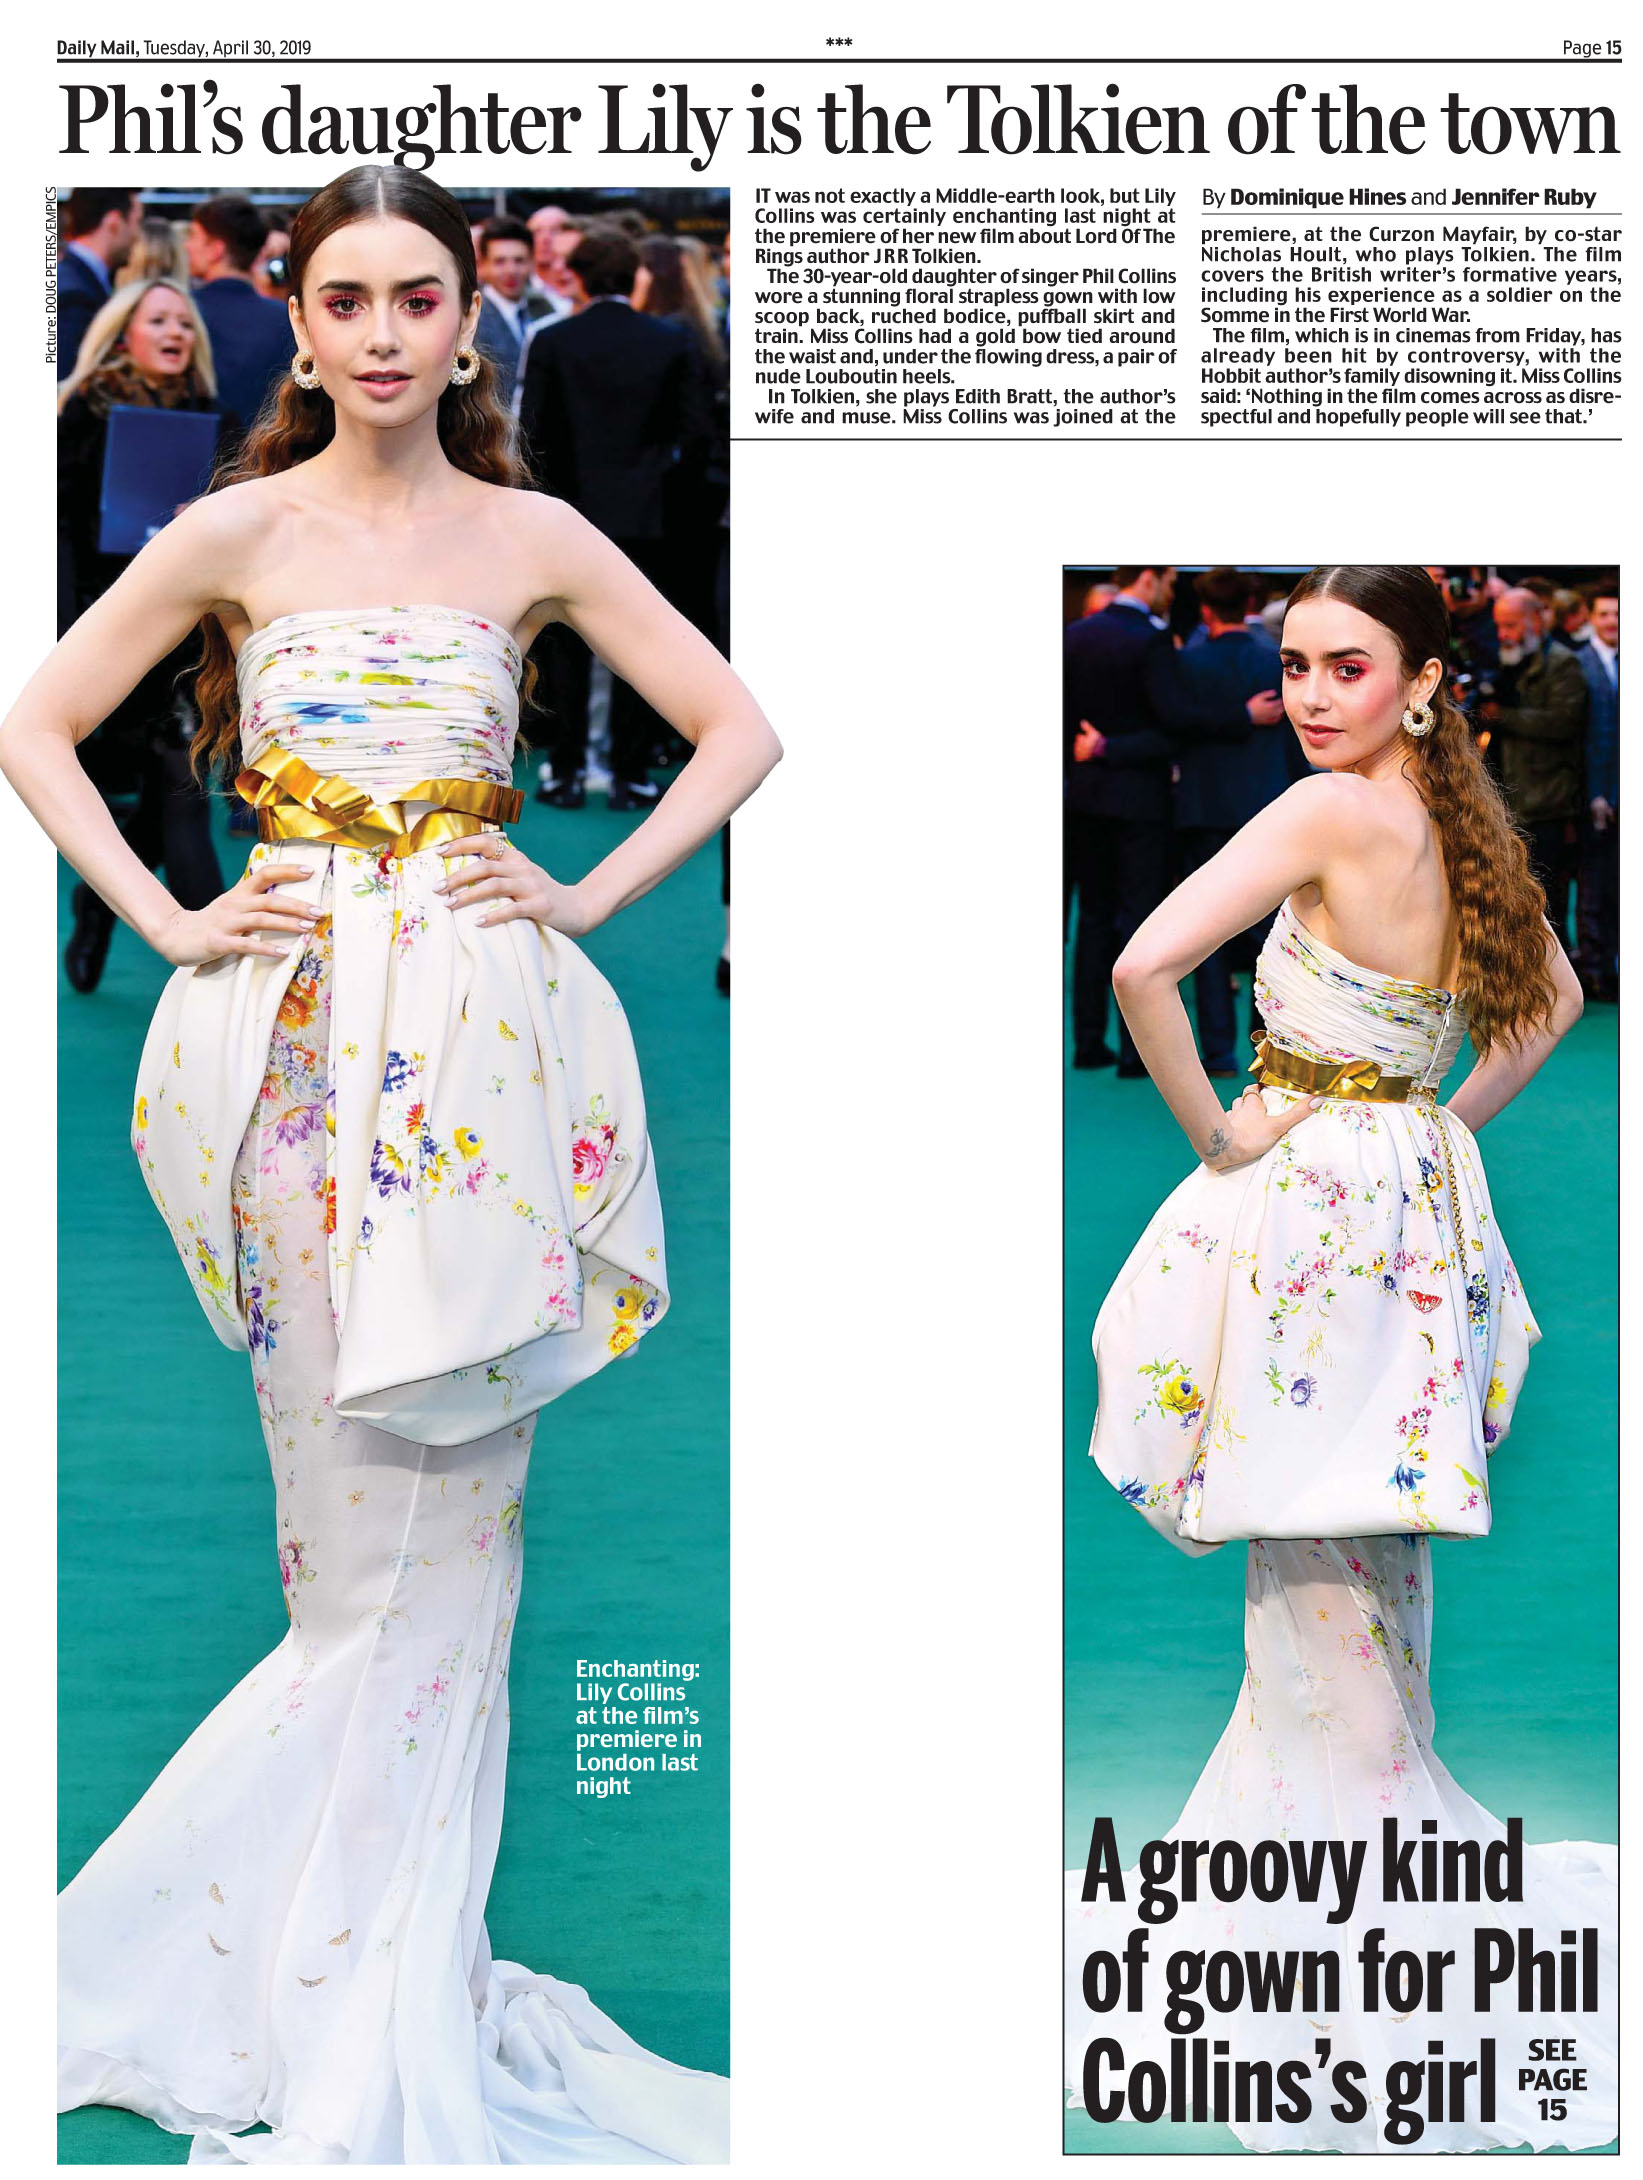 Daily Mail April 30 2019 LilyCollins.jpg